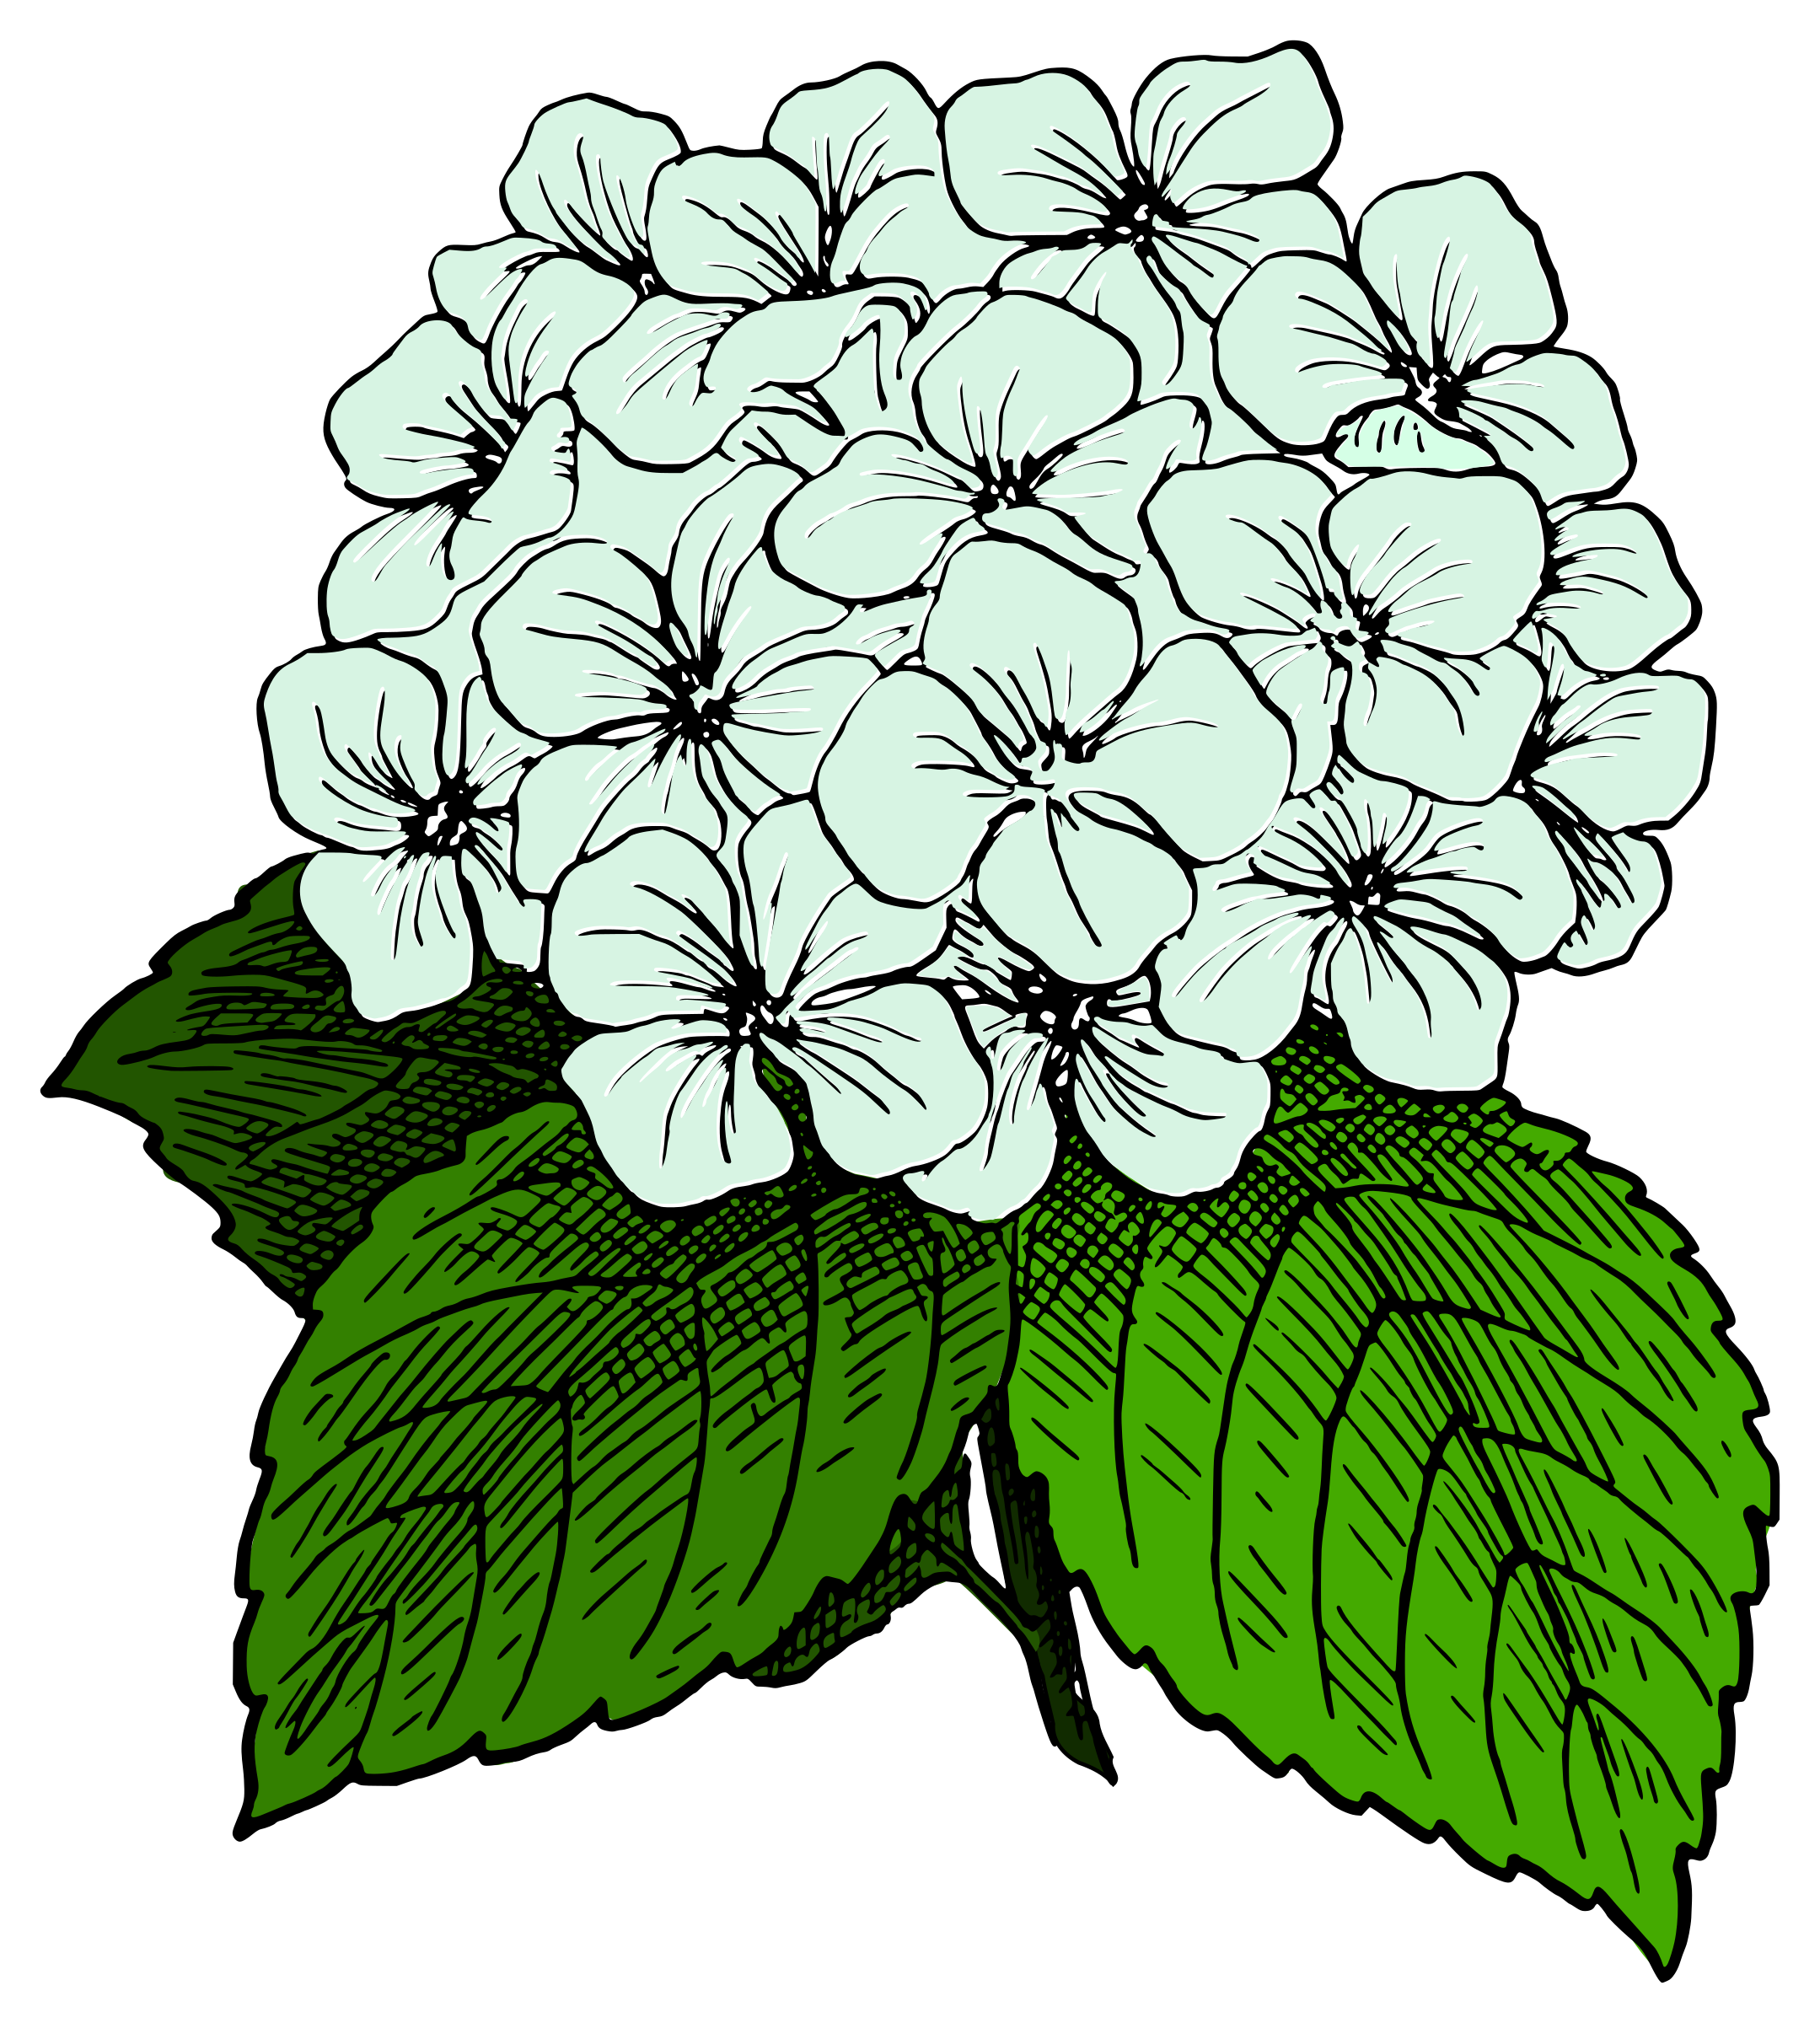 Free Hydrangea Png, Download Free Clip Art, Free Clip Art on.